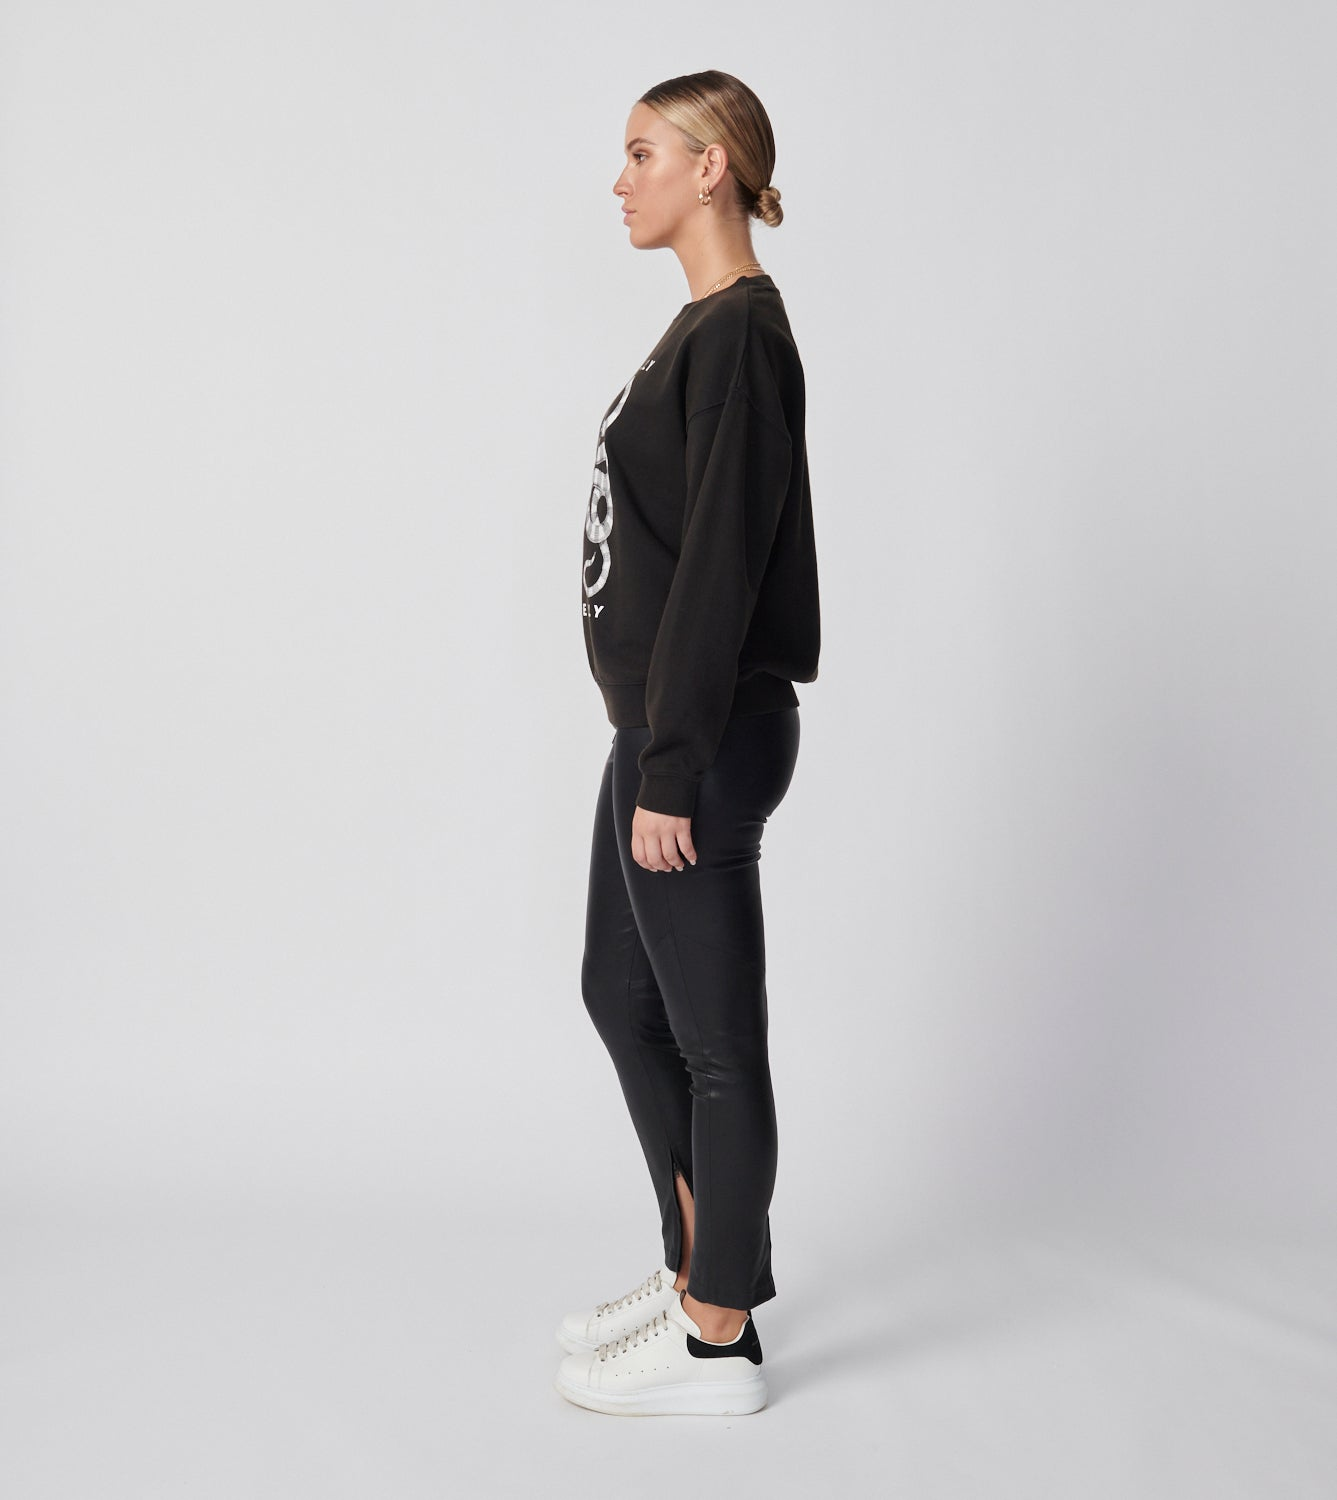 Yin Yang Sweatshirt - Washed Black